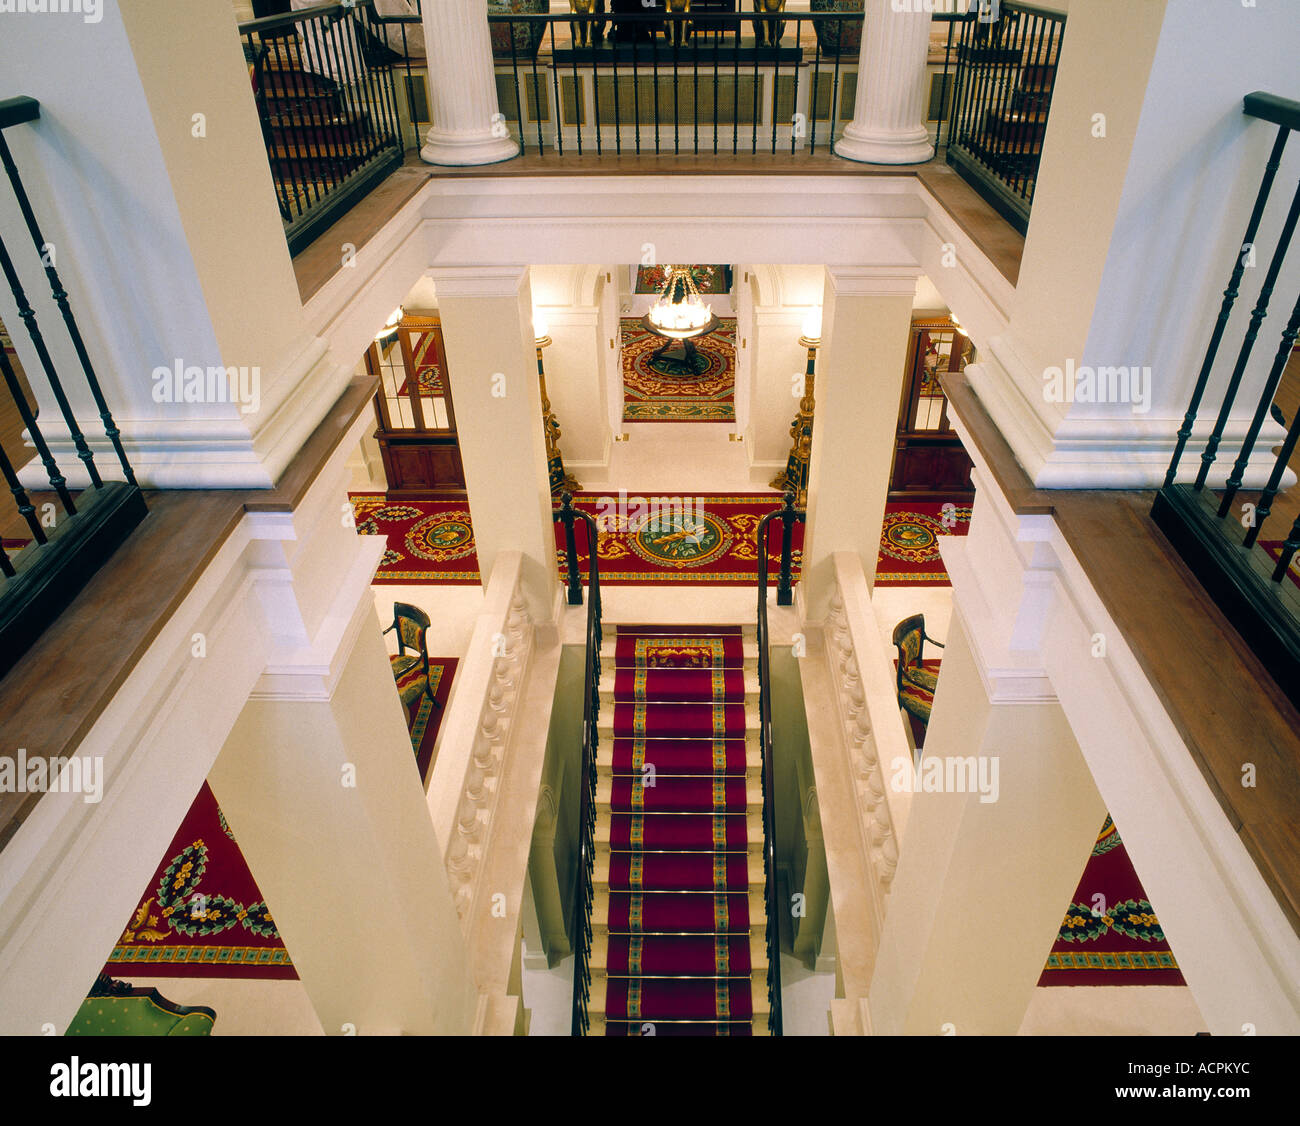 Interior at the Lanesborough Hotel London - Stock Image